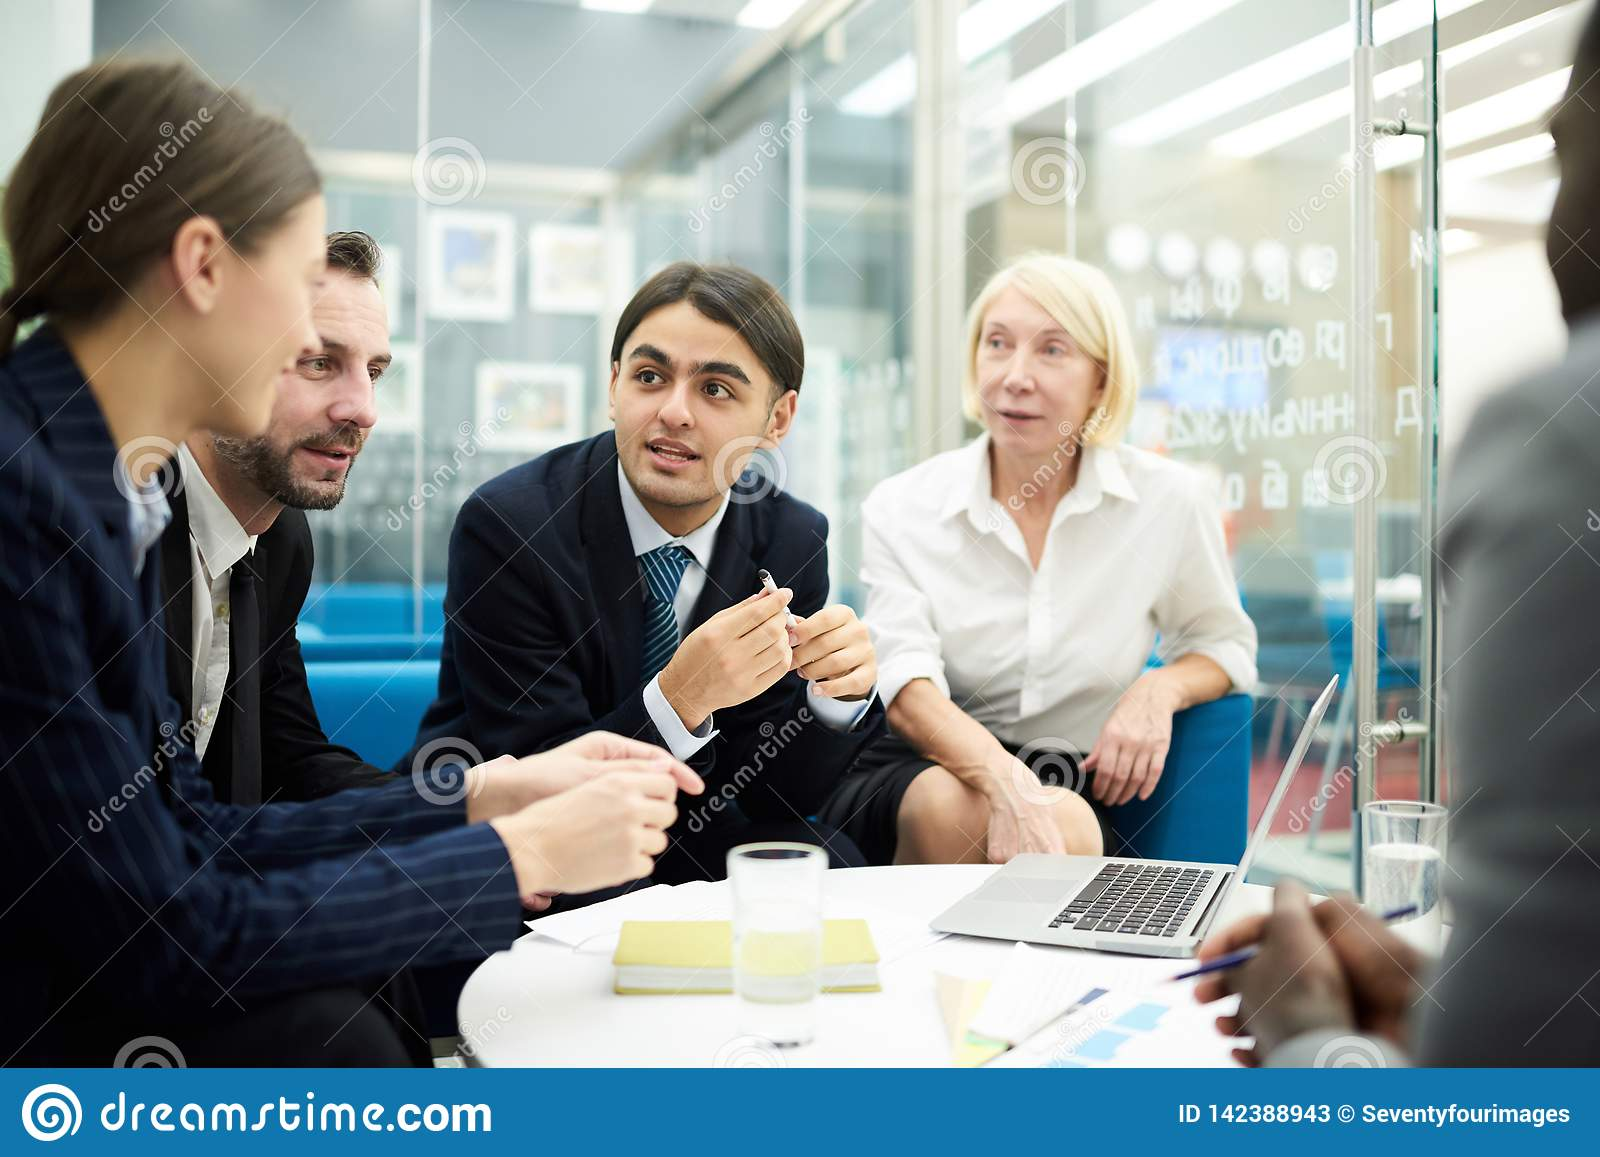 Brainstorming In Office Stock Image Image Of Boss